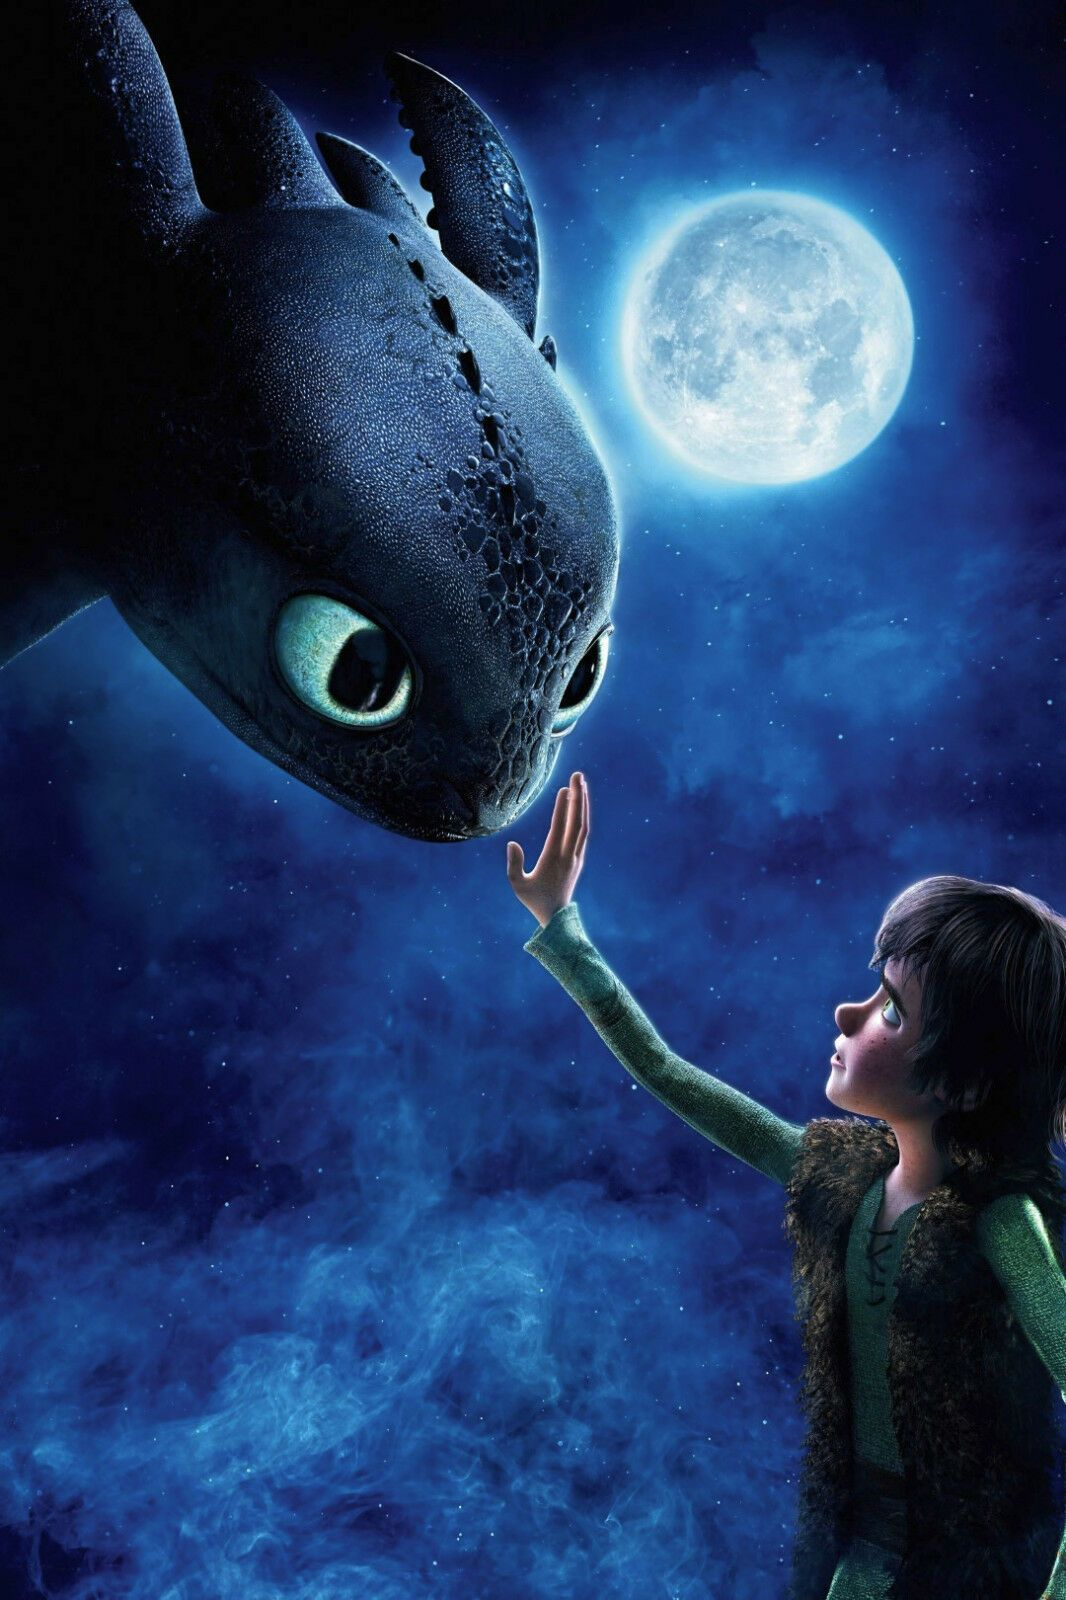 Details About New How To Train Your Dragon Hiccup Toothless Moon